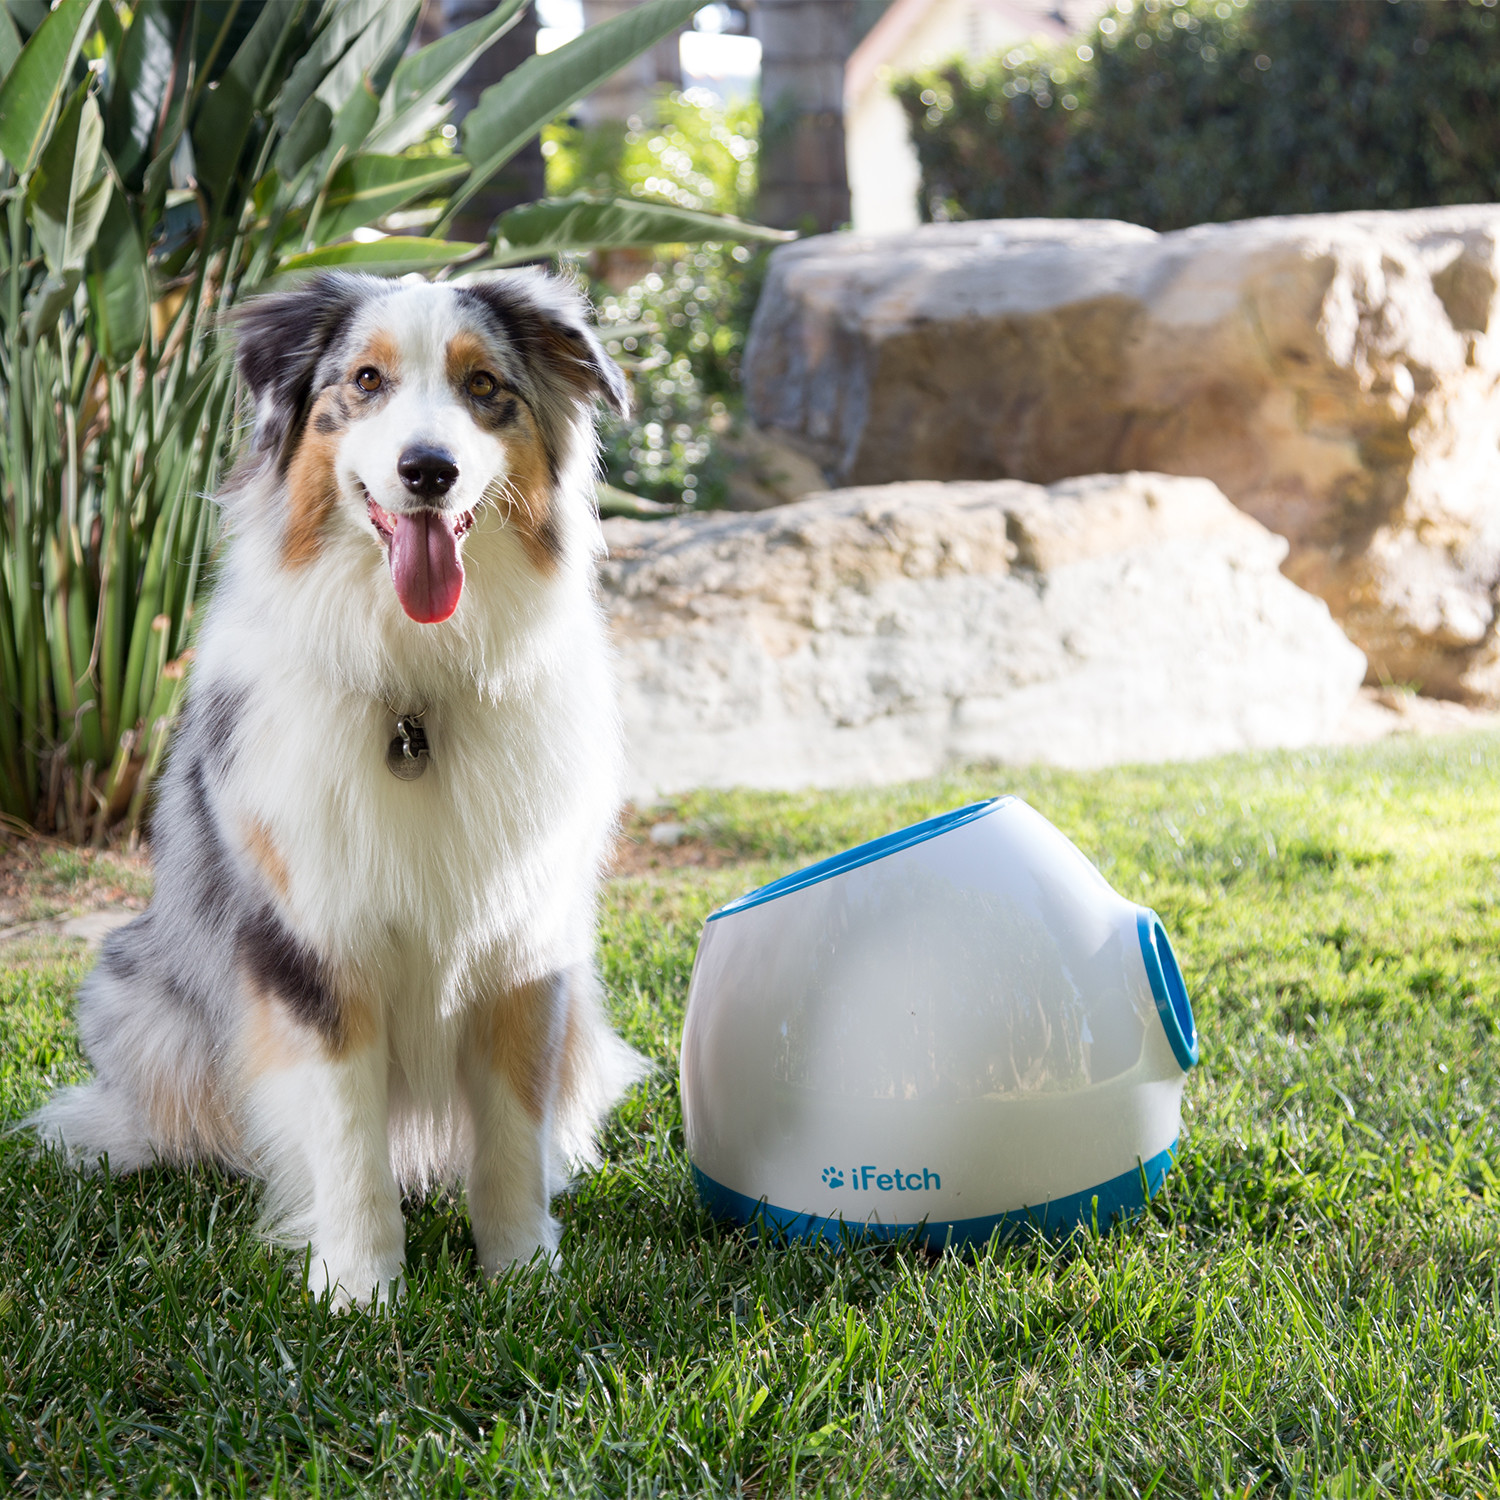 Toy Dogs Or Smaller : Ifetch interactive dog fetch toy small dogs